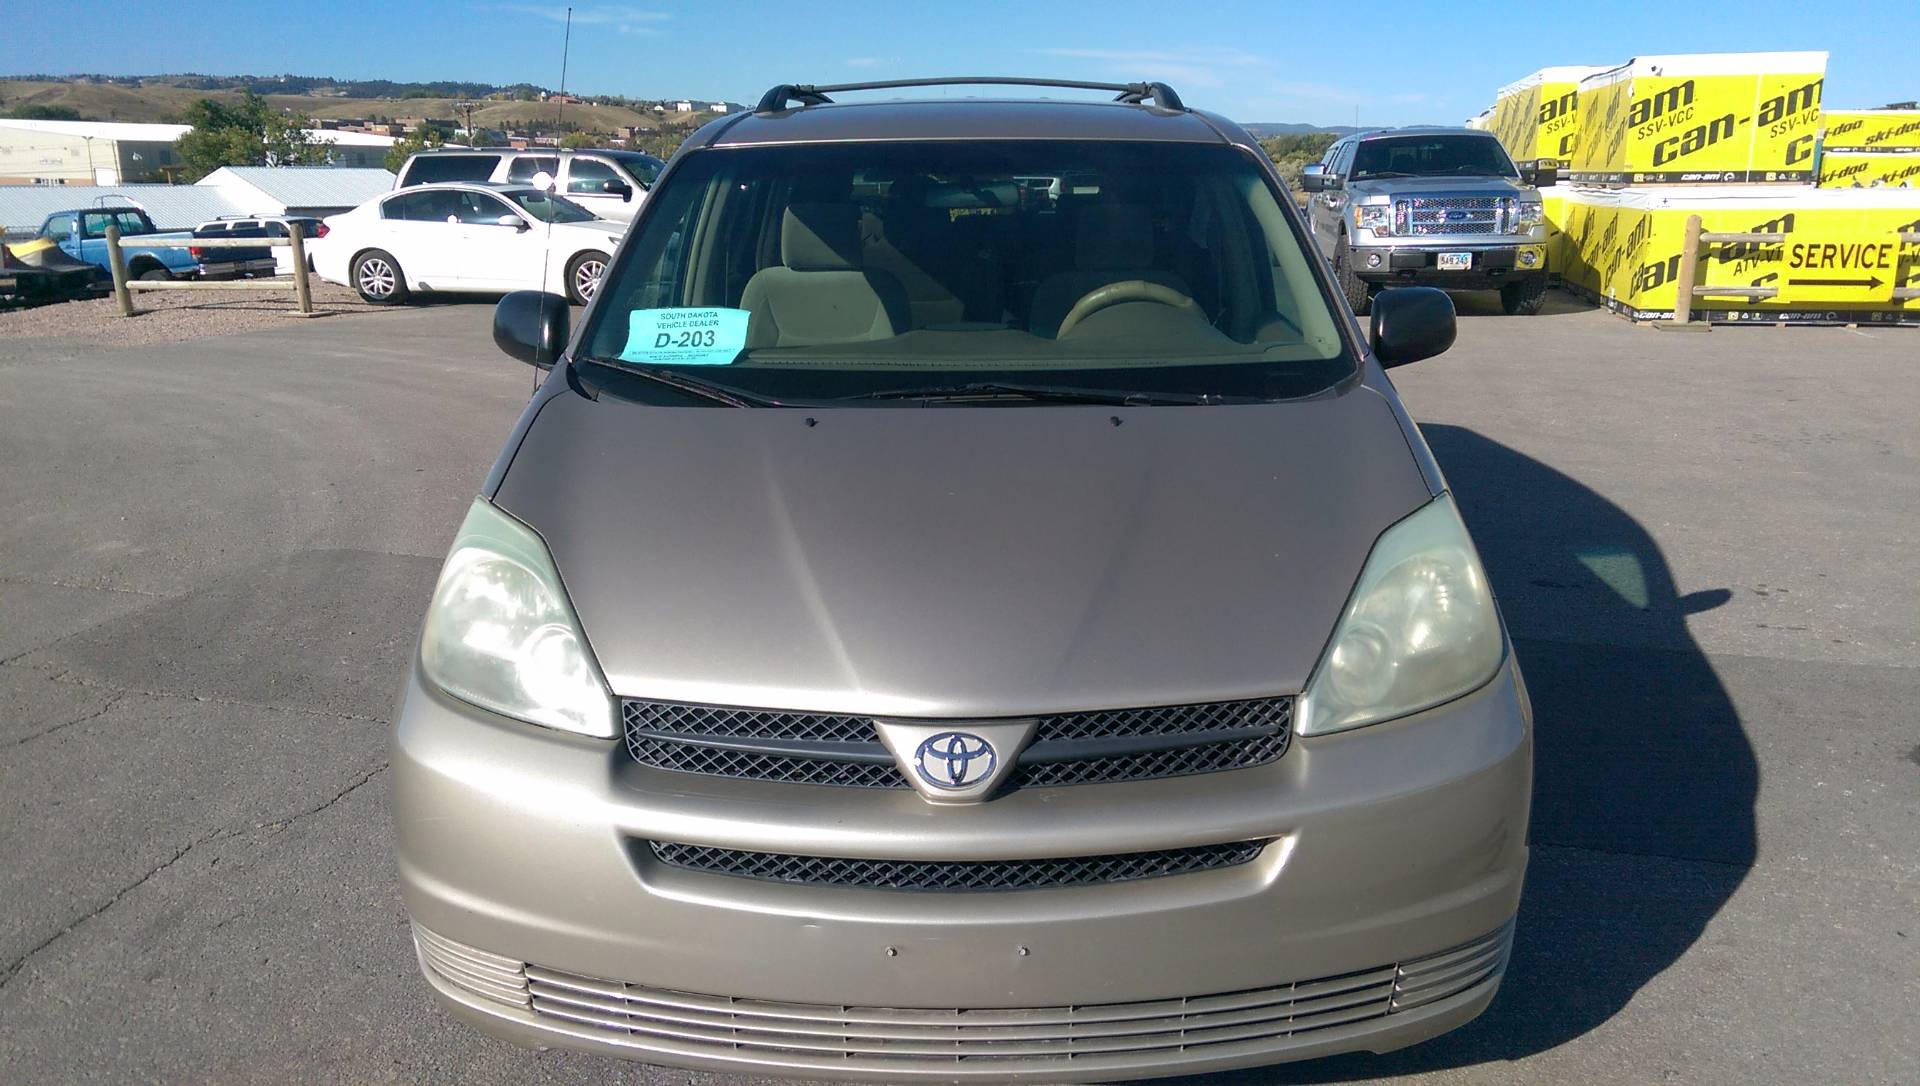 2004 Toyota Sienna LE Cars Rapid City SD at Geebo